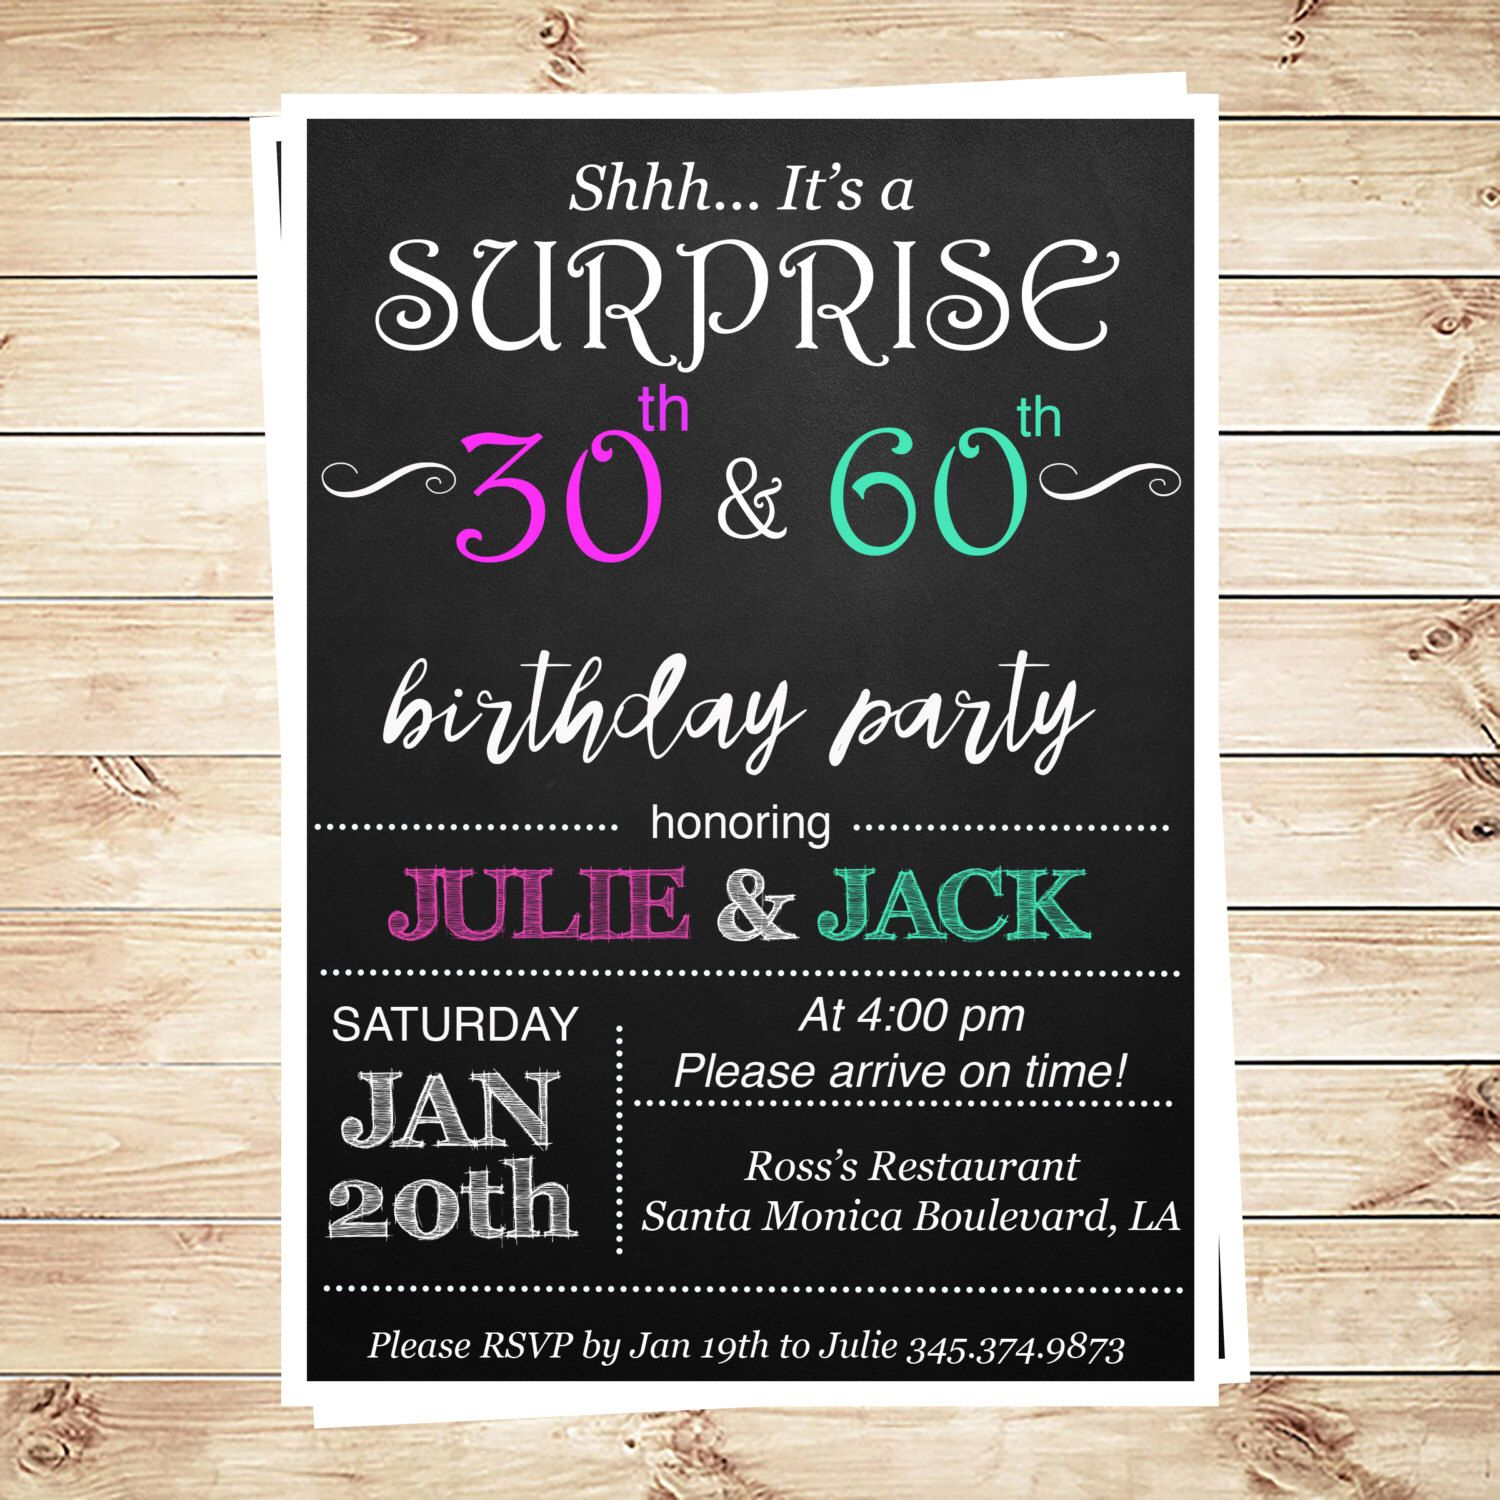 Joint birthday party invitations for adults surprise joint joint birthday party invitations for adults surprise joint birthday party invite for adults editable stopboris Choice Image